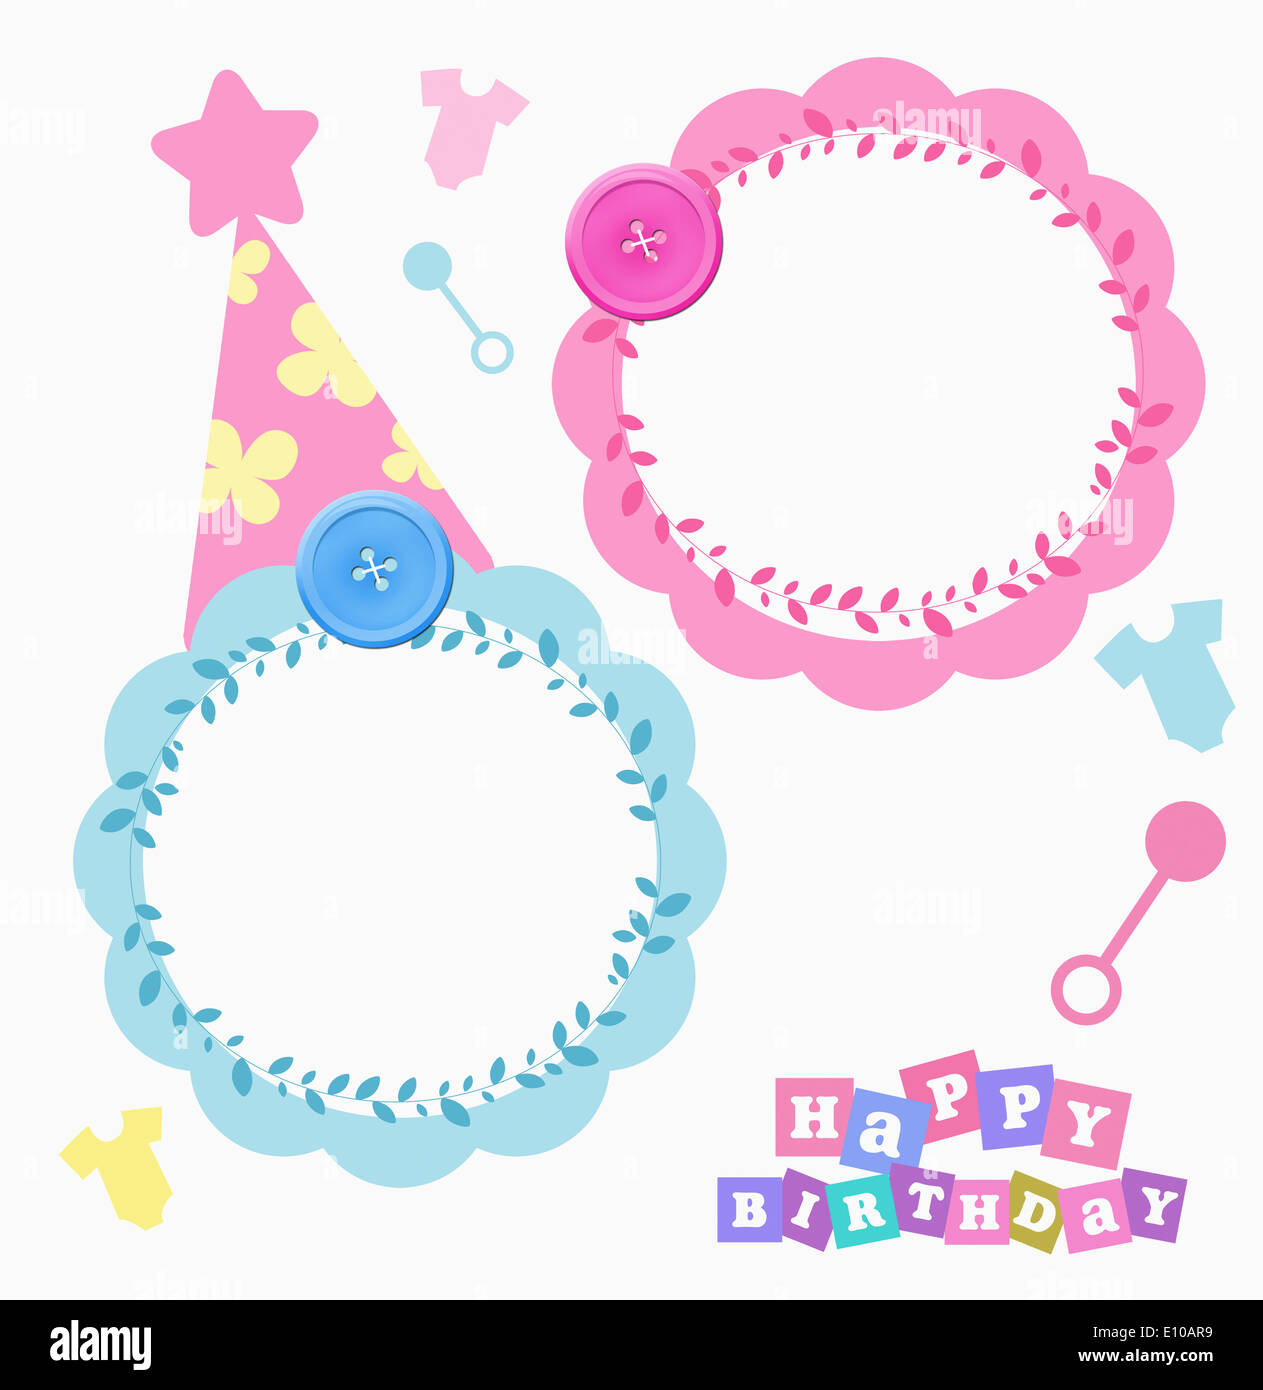 Beautiful 1 Inch Circle Template Tiny 1 Page Proposal Template Square 100 Free Resume Templates 16 Team Bracket Template Young 2 Column Blogger Template Green2014 Calendar Templates Excel A Card Template Wishing Happy First Birthday Stock Photo, Royalty ..